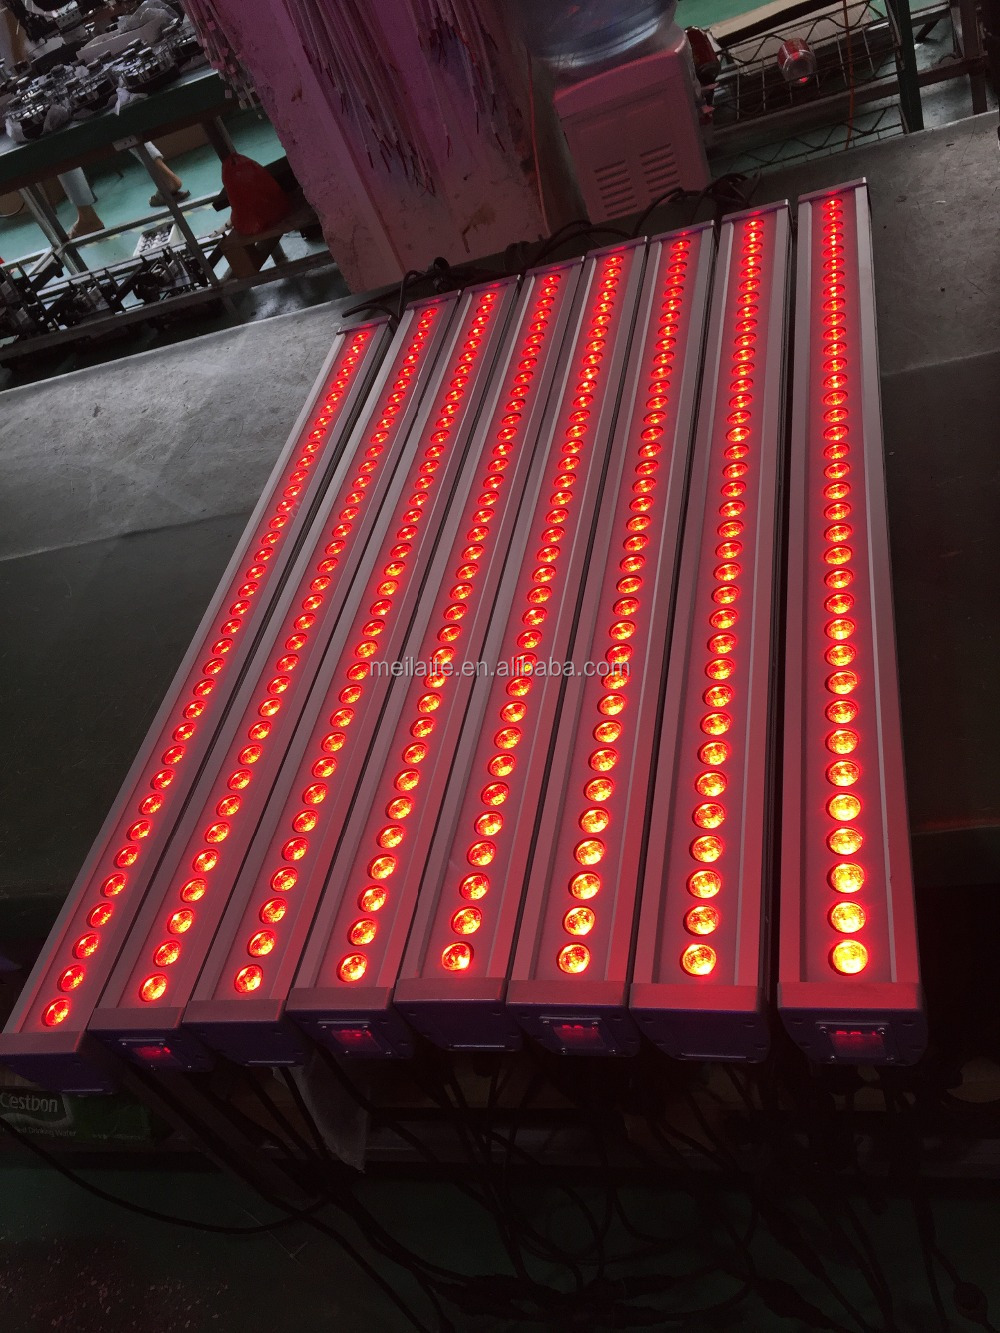 36pcs high power 36 x 3w rgb outdoor ip65 DMX led wall washer